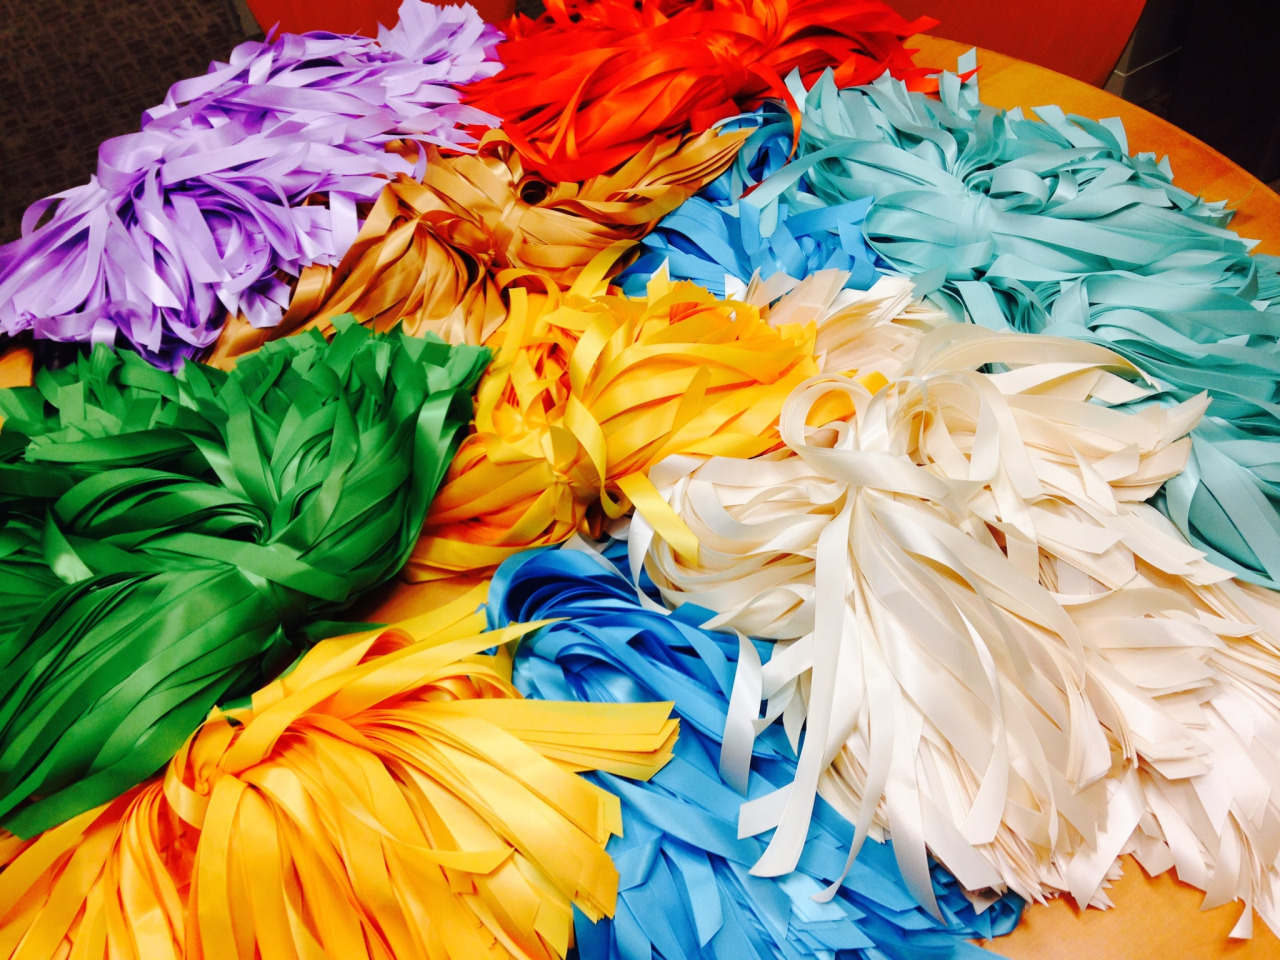 Just picked up 12,000 ribbons to give out during the People's Climate March. Massive thanks to NYC's M&J Trimming Company!